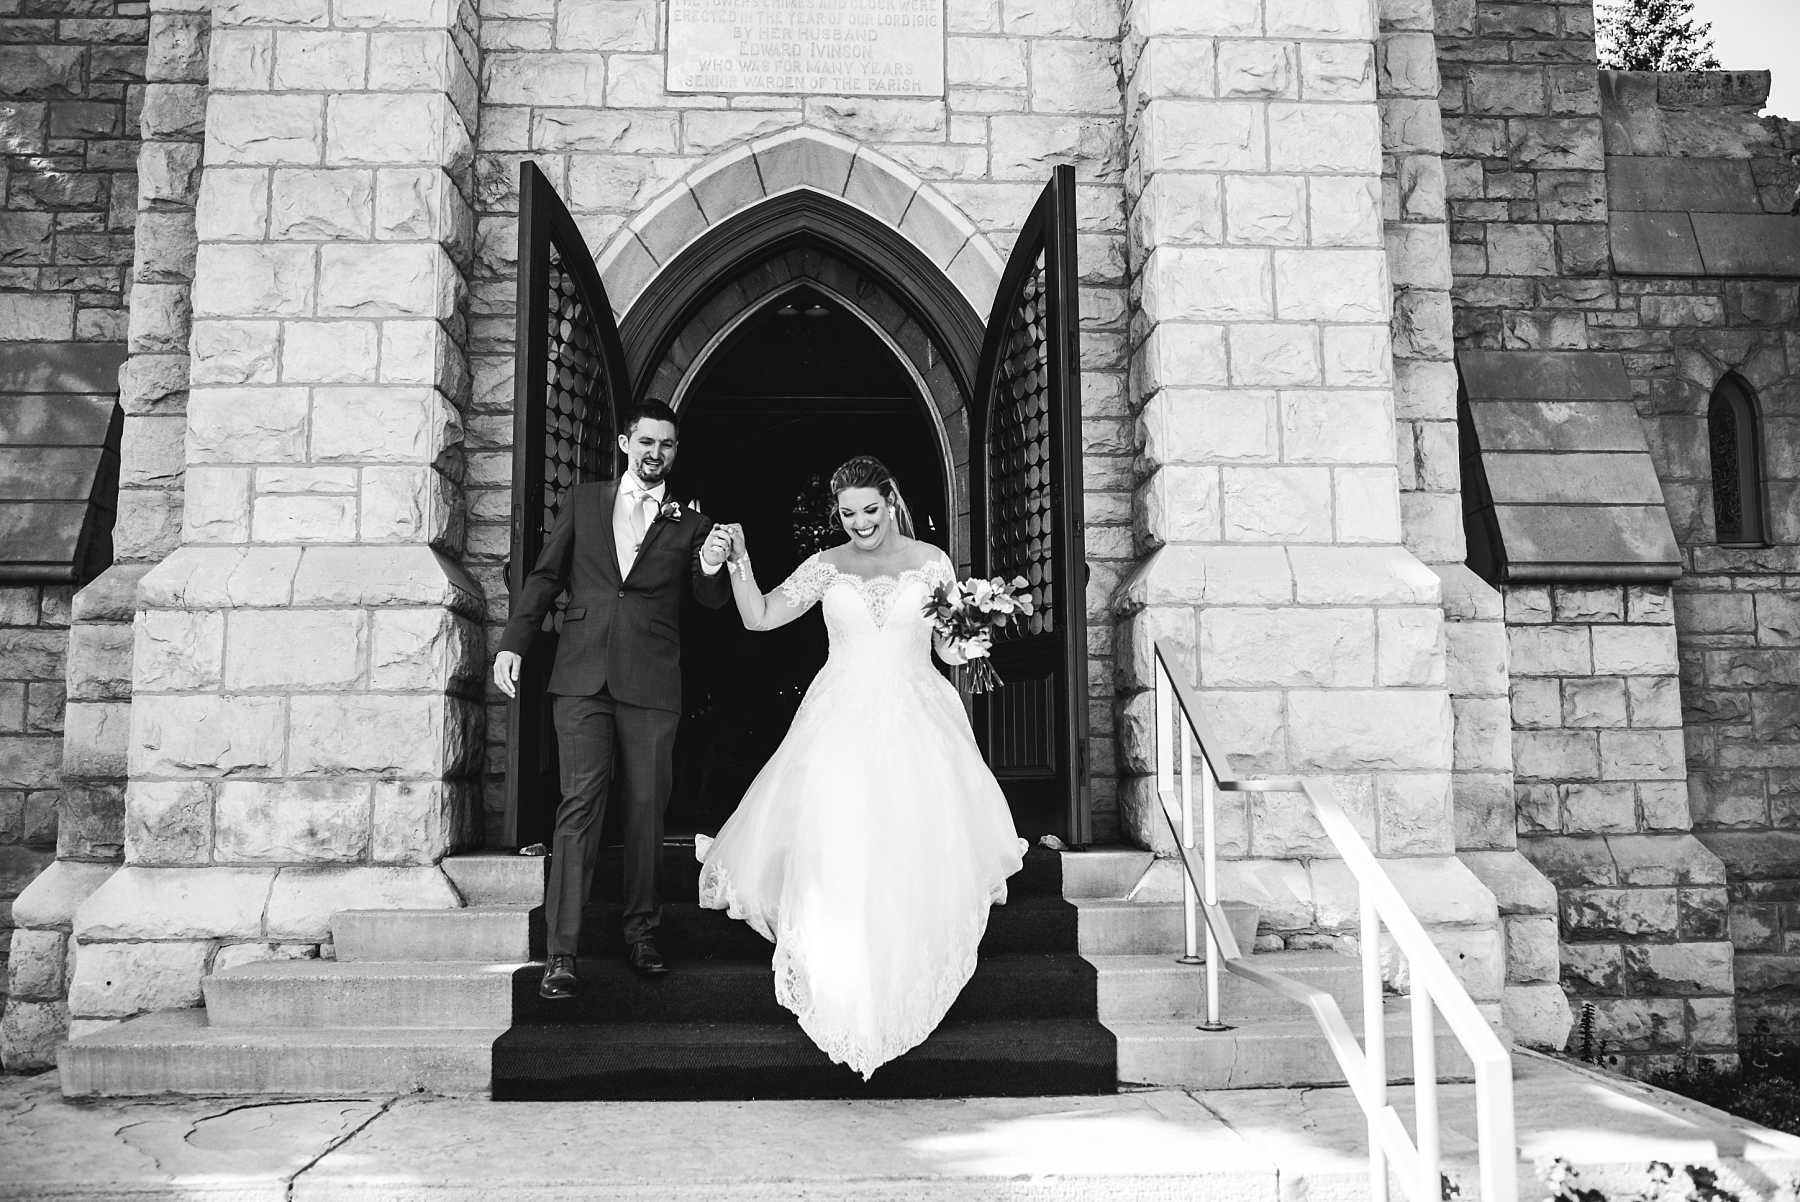 Bride and groom leaving church in Wyoming wedding